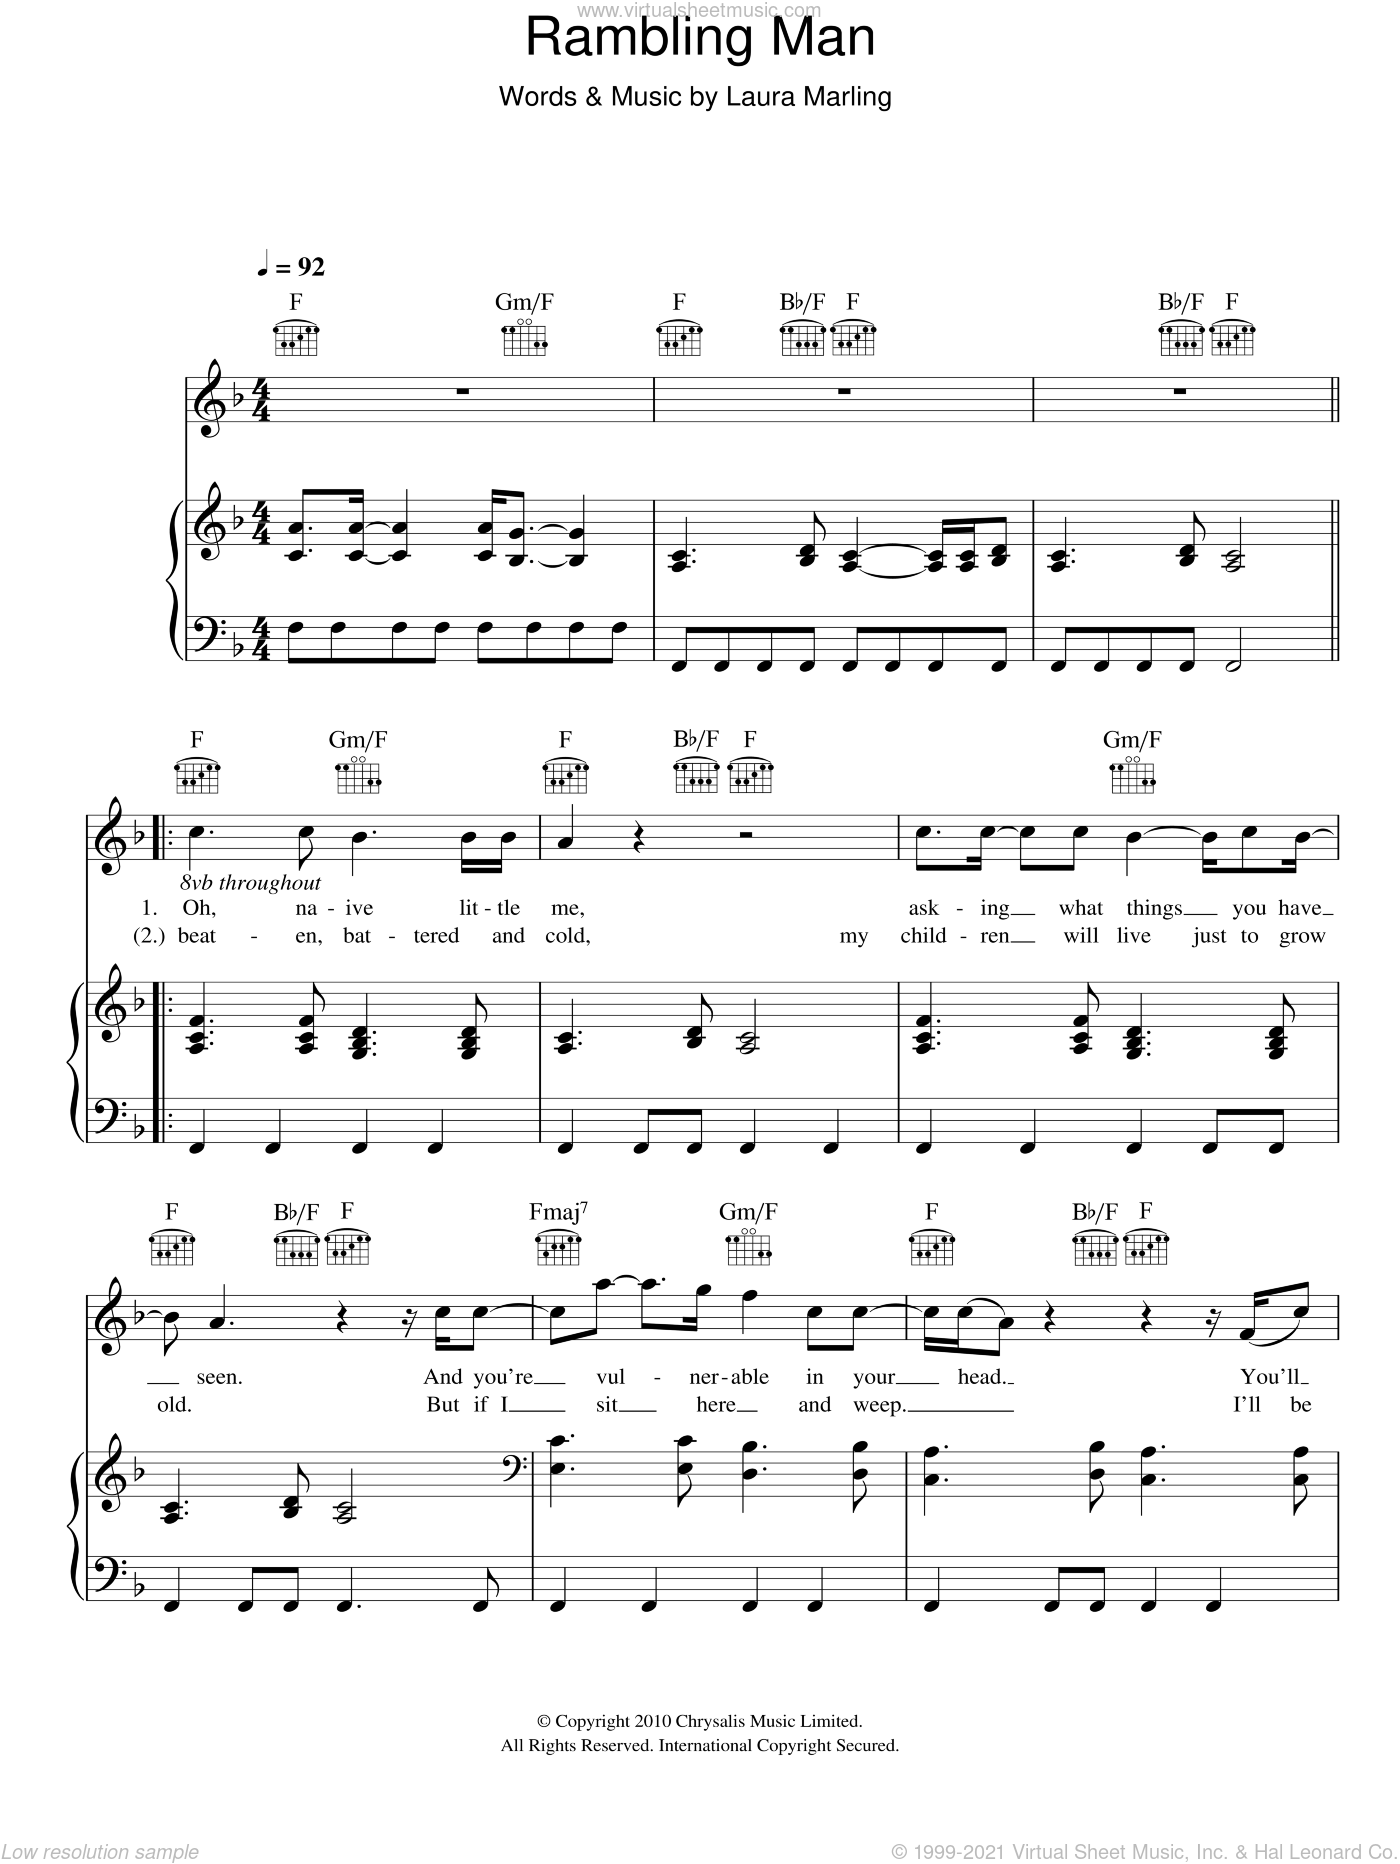 Rambling Man sheet music for voice, piano or guitar by Laura Marling